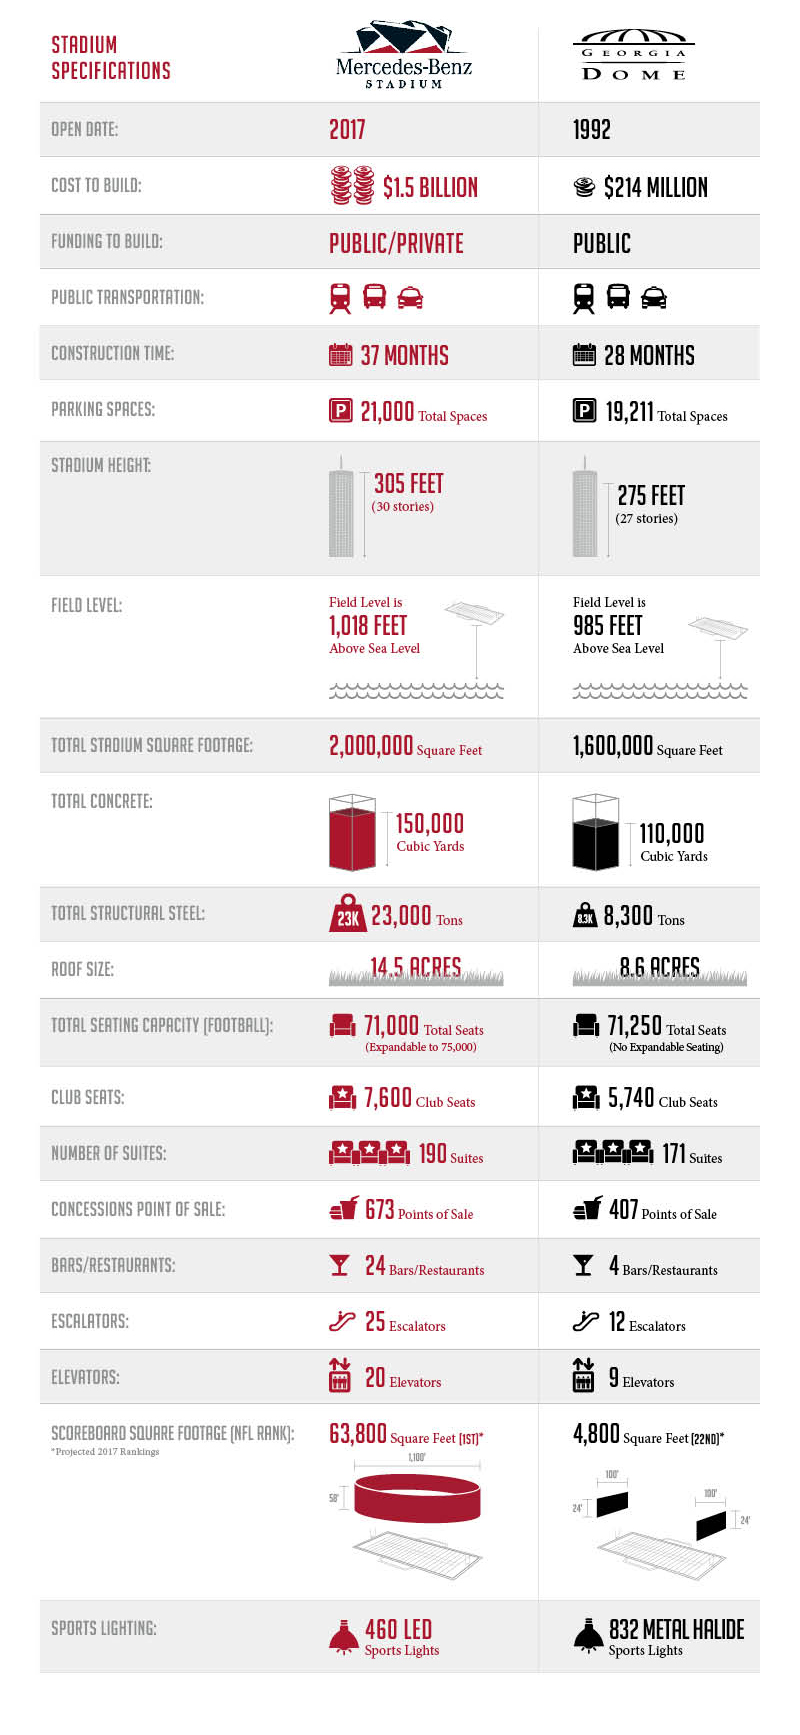 mbs_by-the-numbers